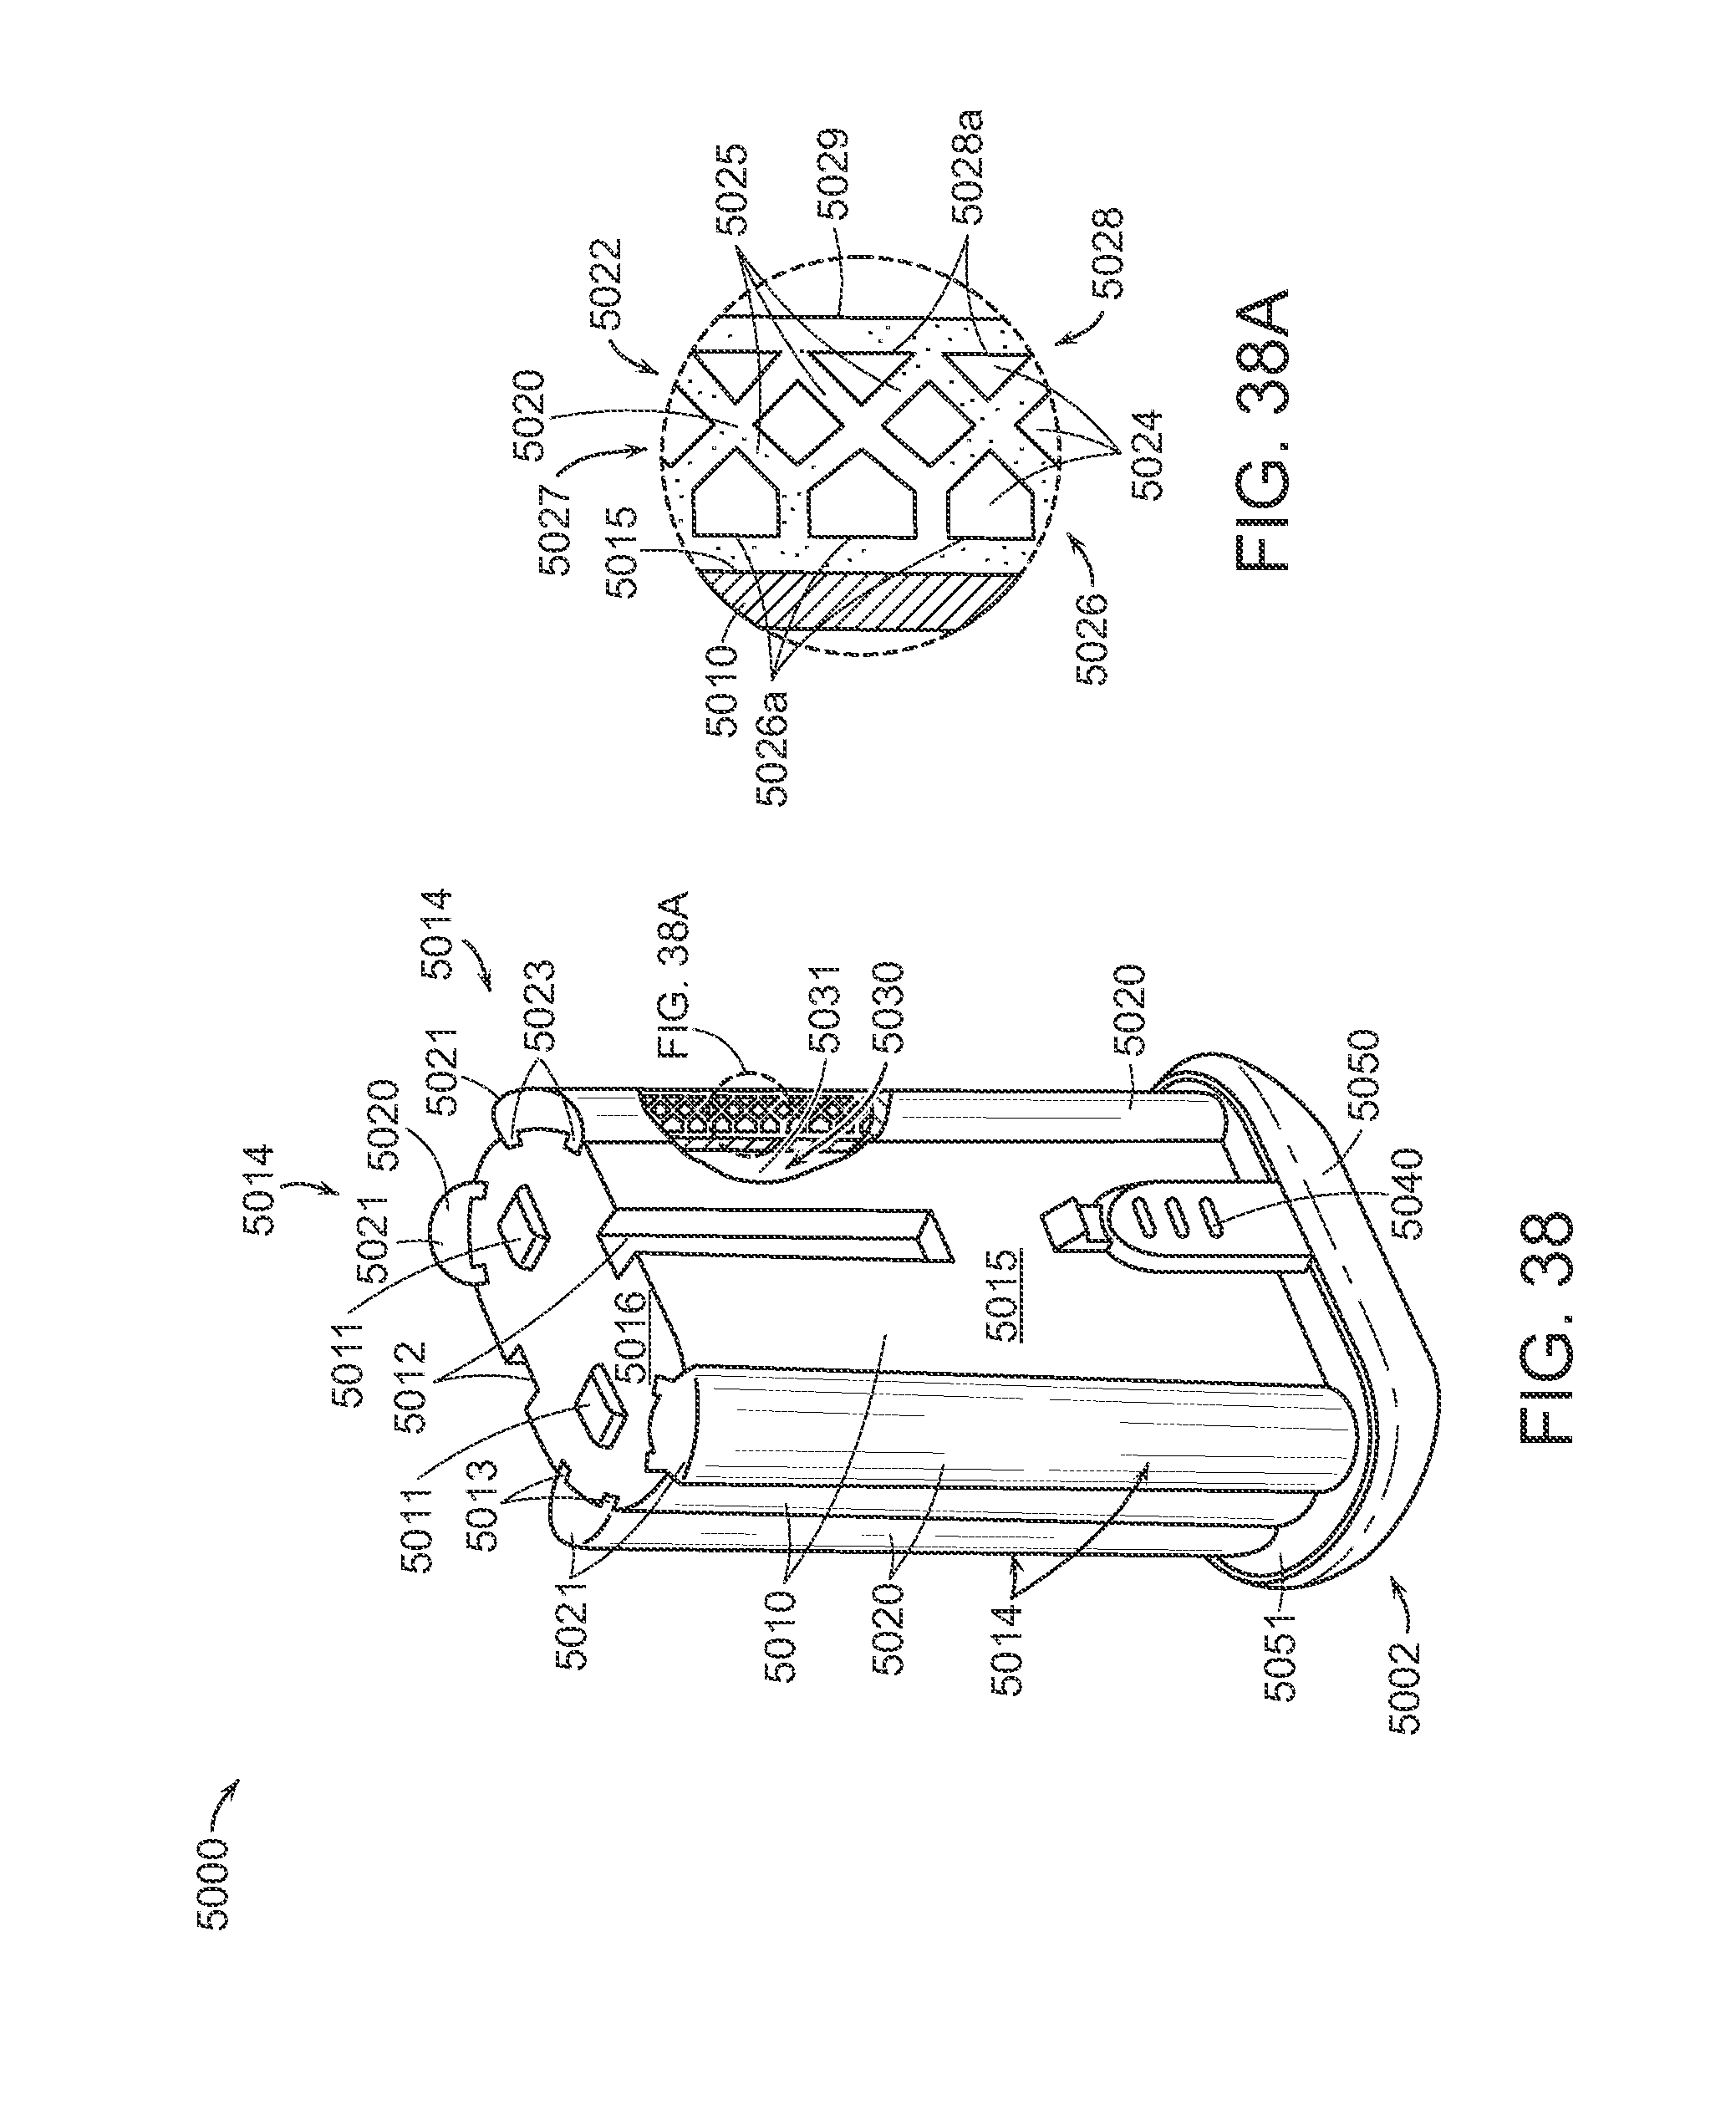 us20160249908a1 reinforced battery for a surgical instrument Zenith 35A Tube Radio Schematics us20160249908a1 reinforced battery for a surgical instrument patents